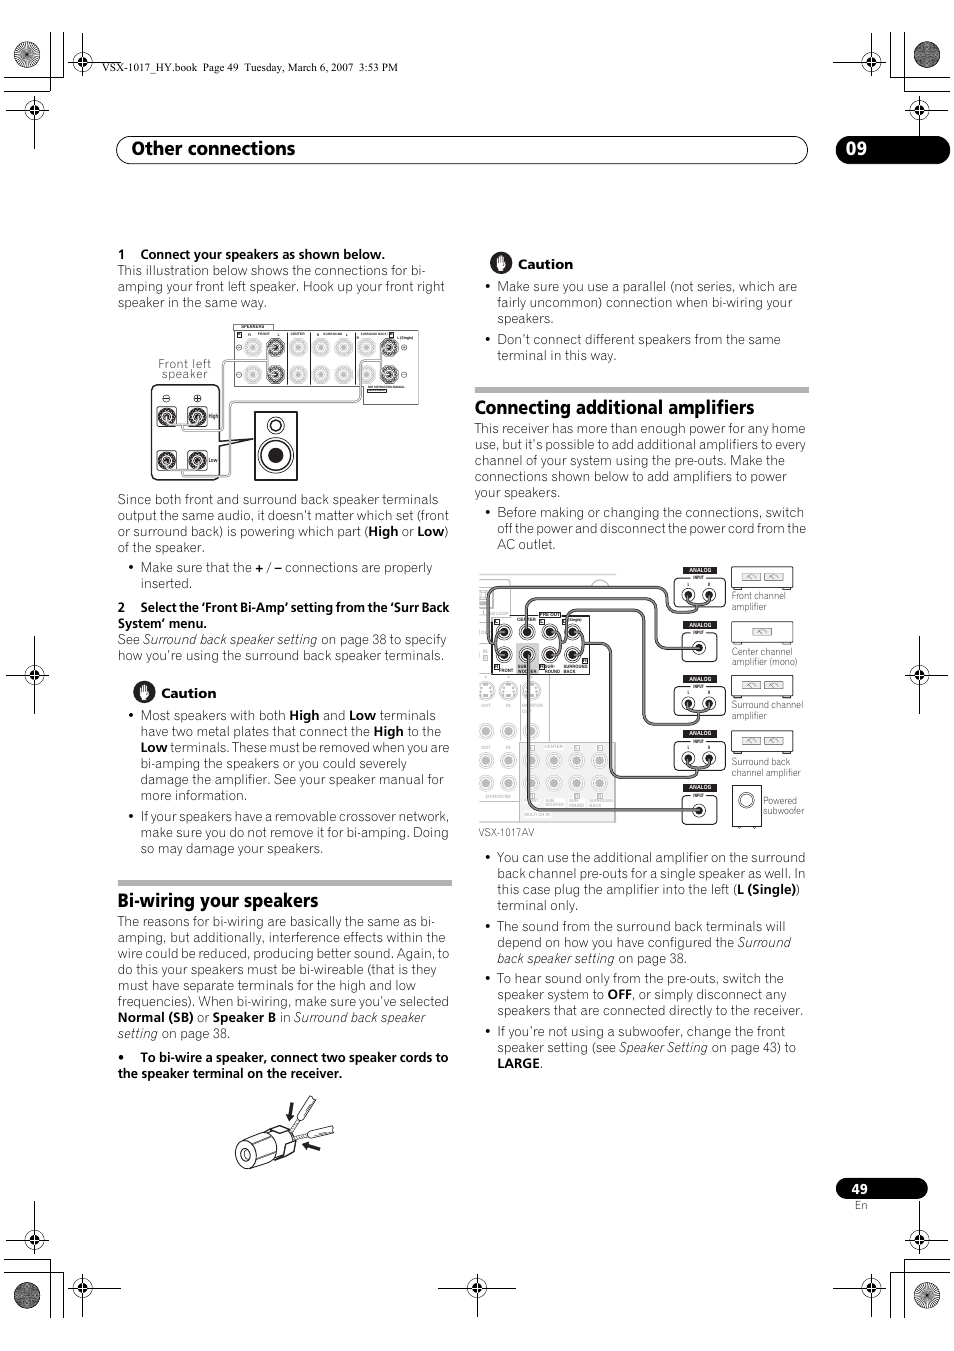 Other Connections 09 Bi Wiring Your Speakers Connecting Additional Home For Amplifiers Pioneer Vsx 1017av K User Manual Page 49 72